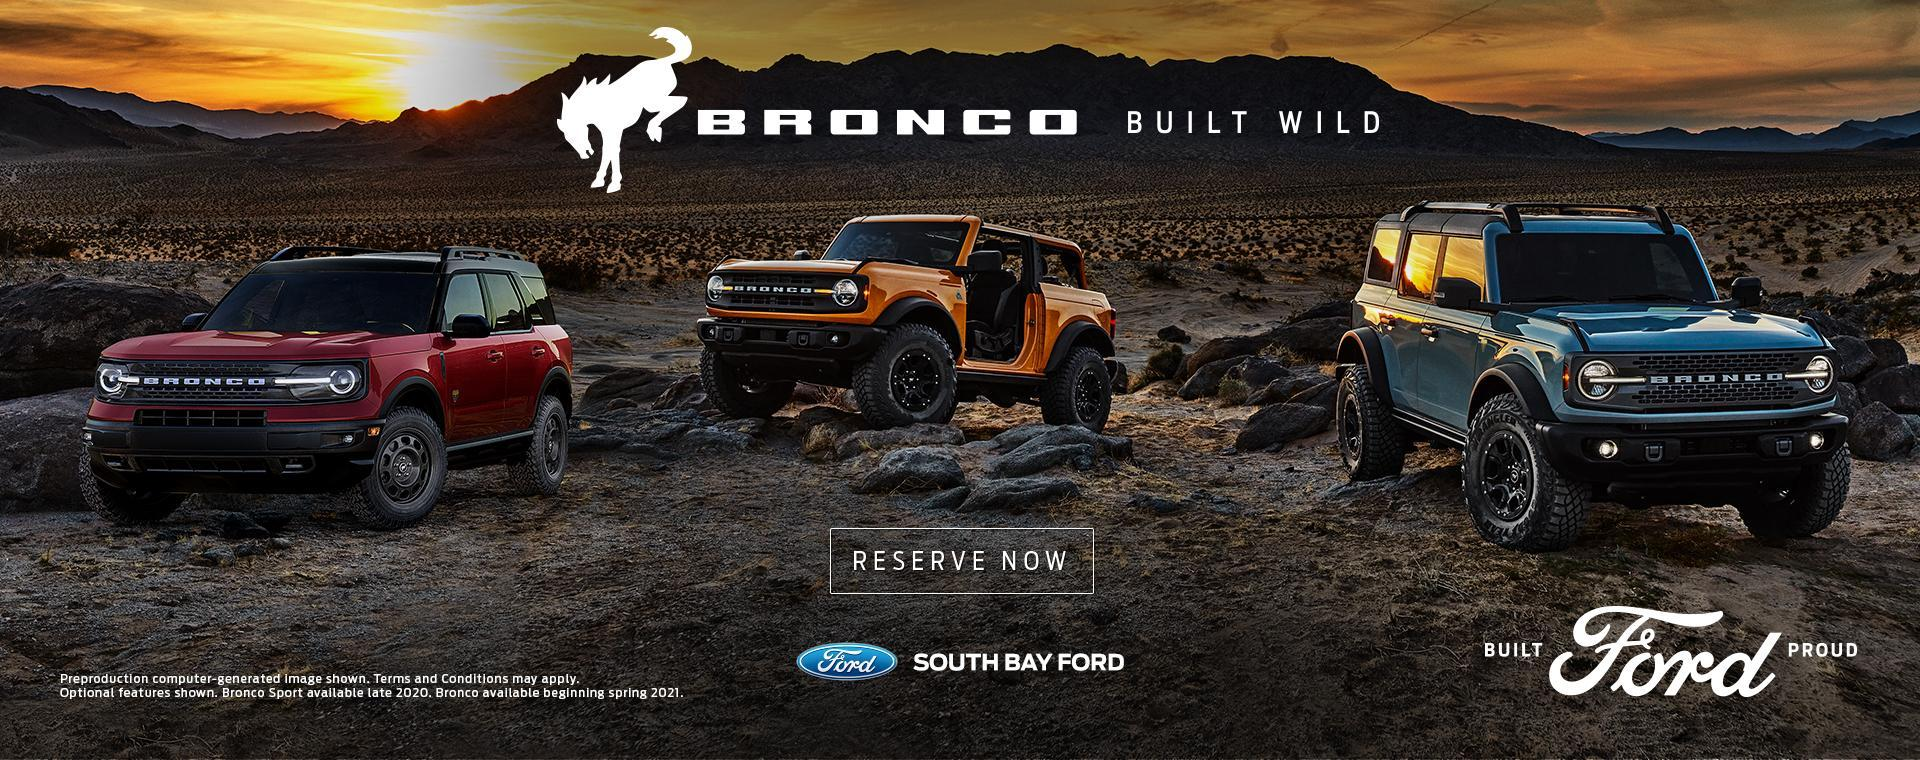 Bronco Reserve at South Bay Ford